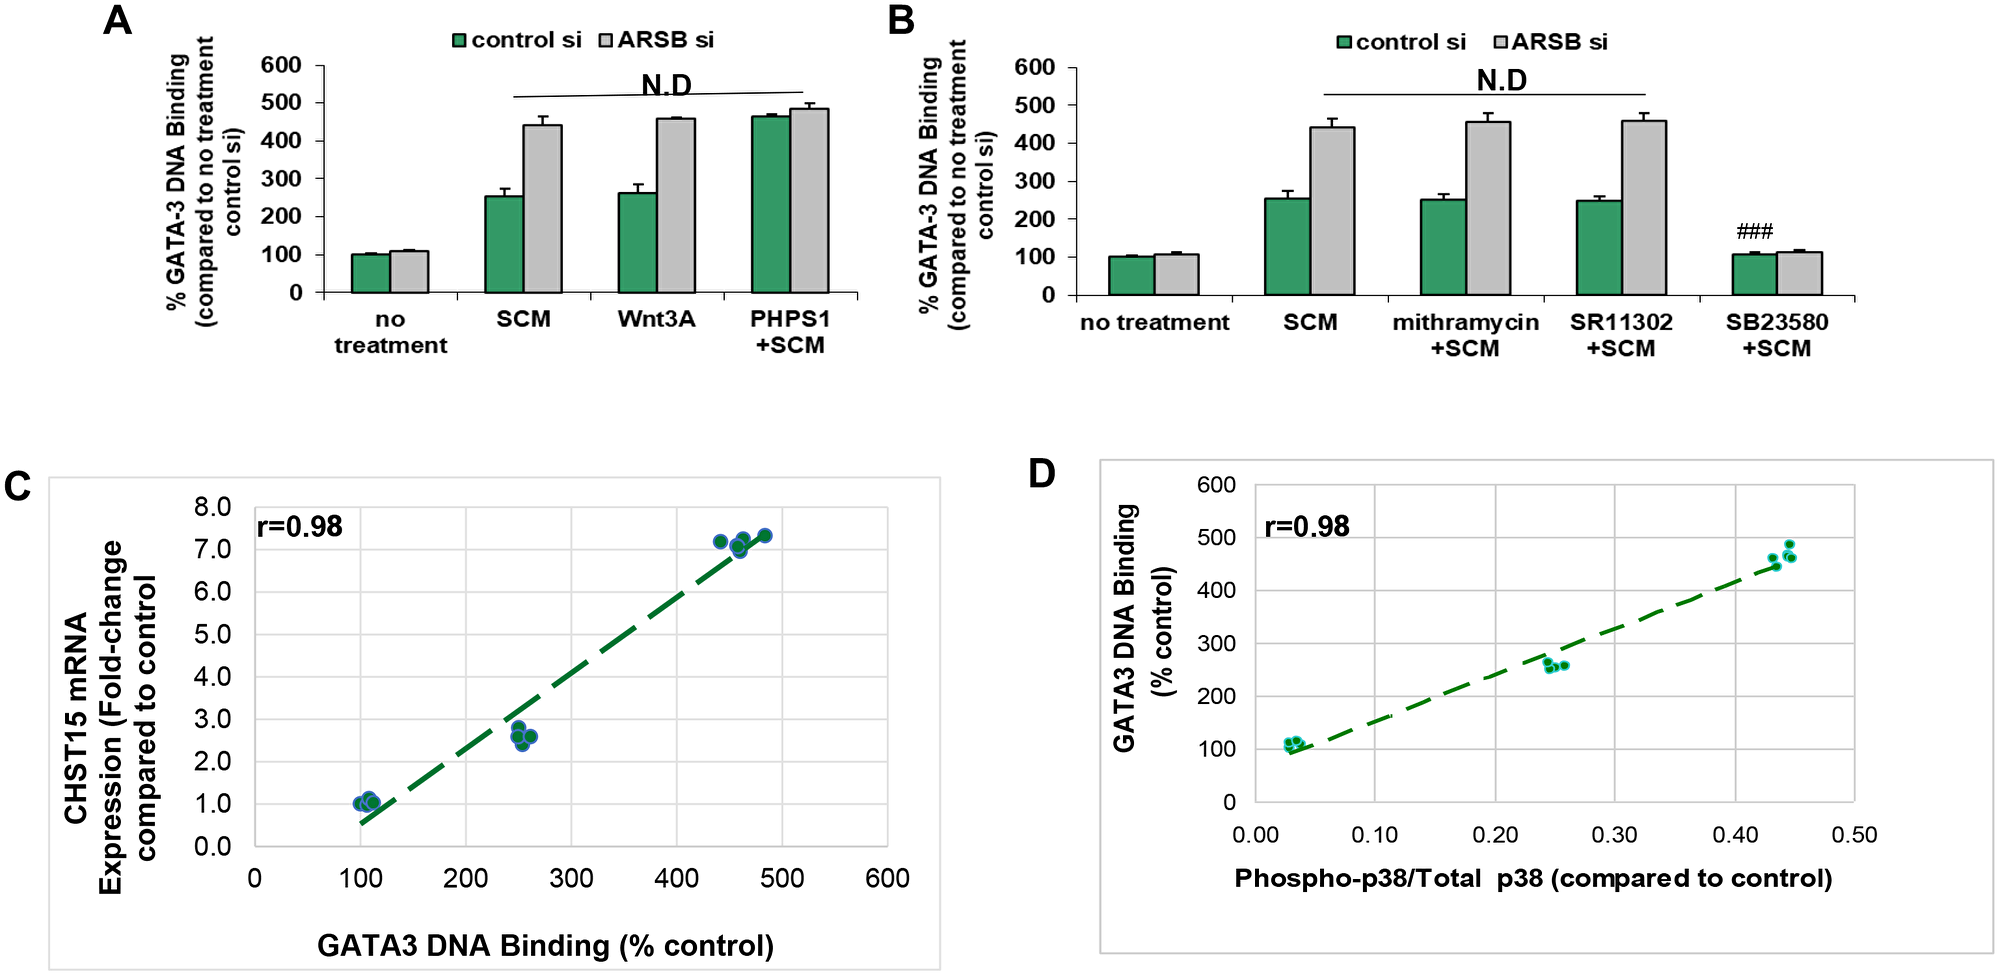 GATA-3 DNA binding is increased by activation of Wnt signaling.